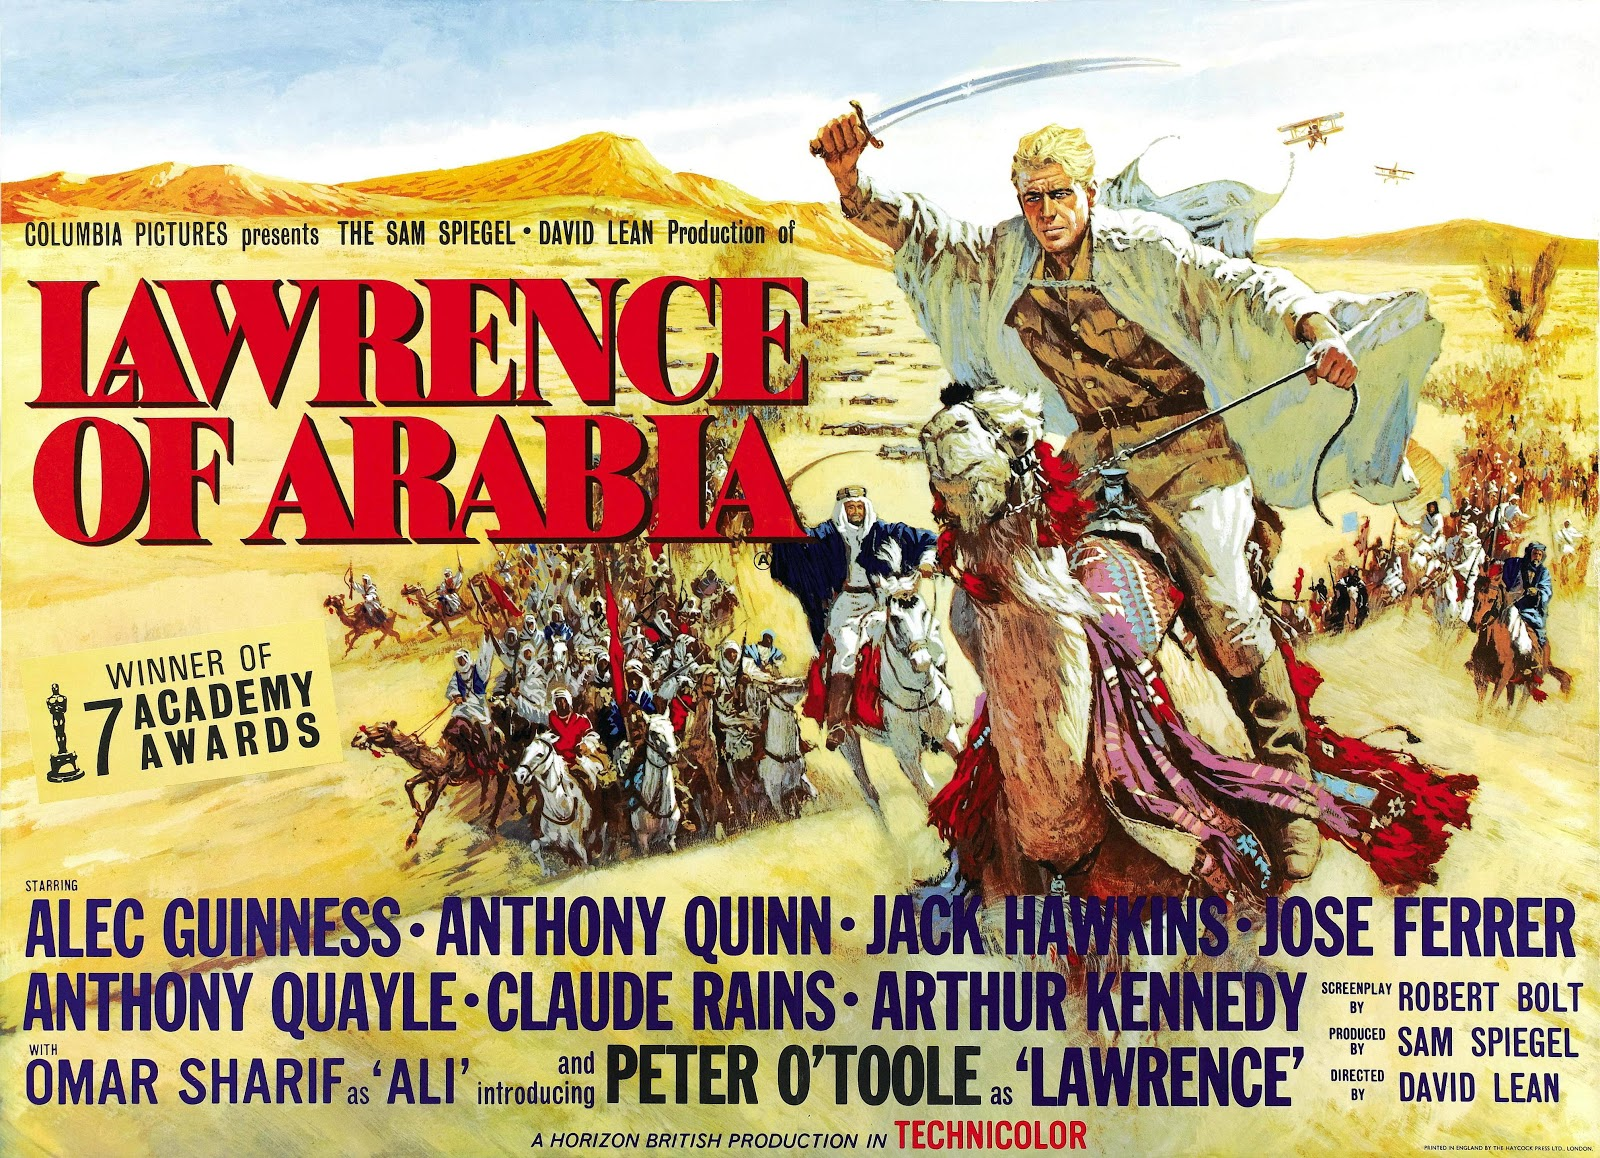 compare lawrence of arabia film with Find helpful customer reviews and review ratings for lawrence of arabia (restored version)  a disc 1, bluray film: lawrence of arabia - 227 minutes (378 hours).